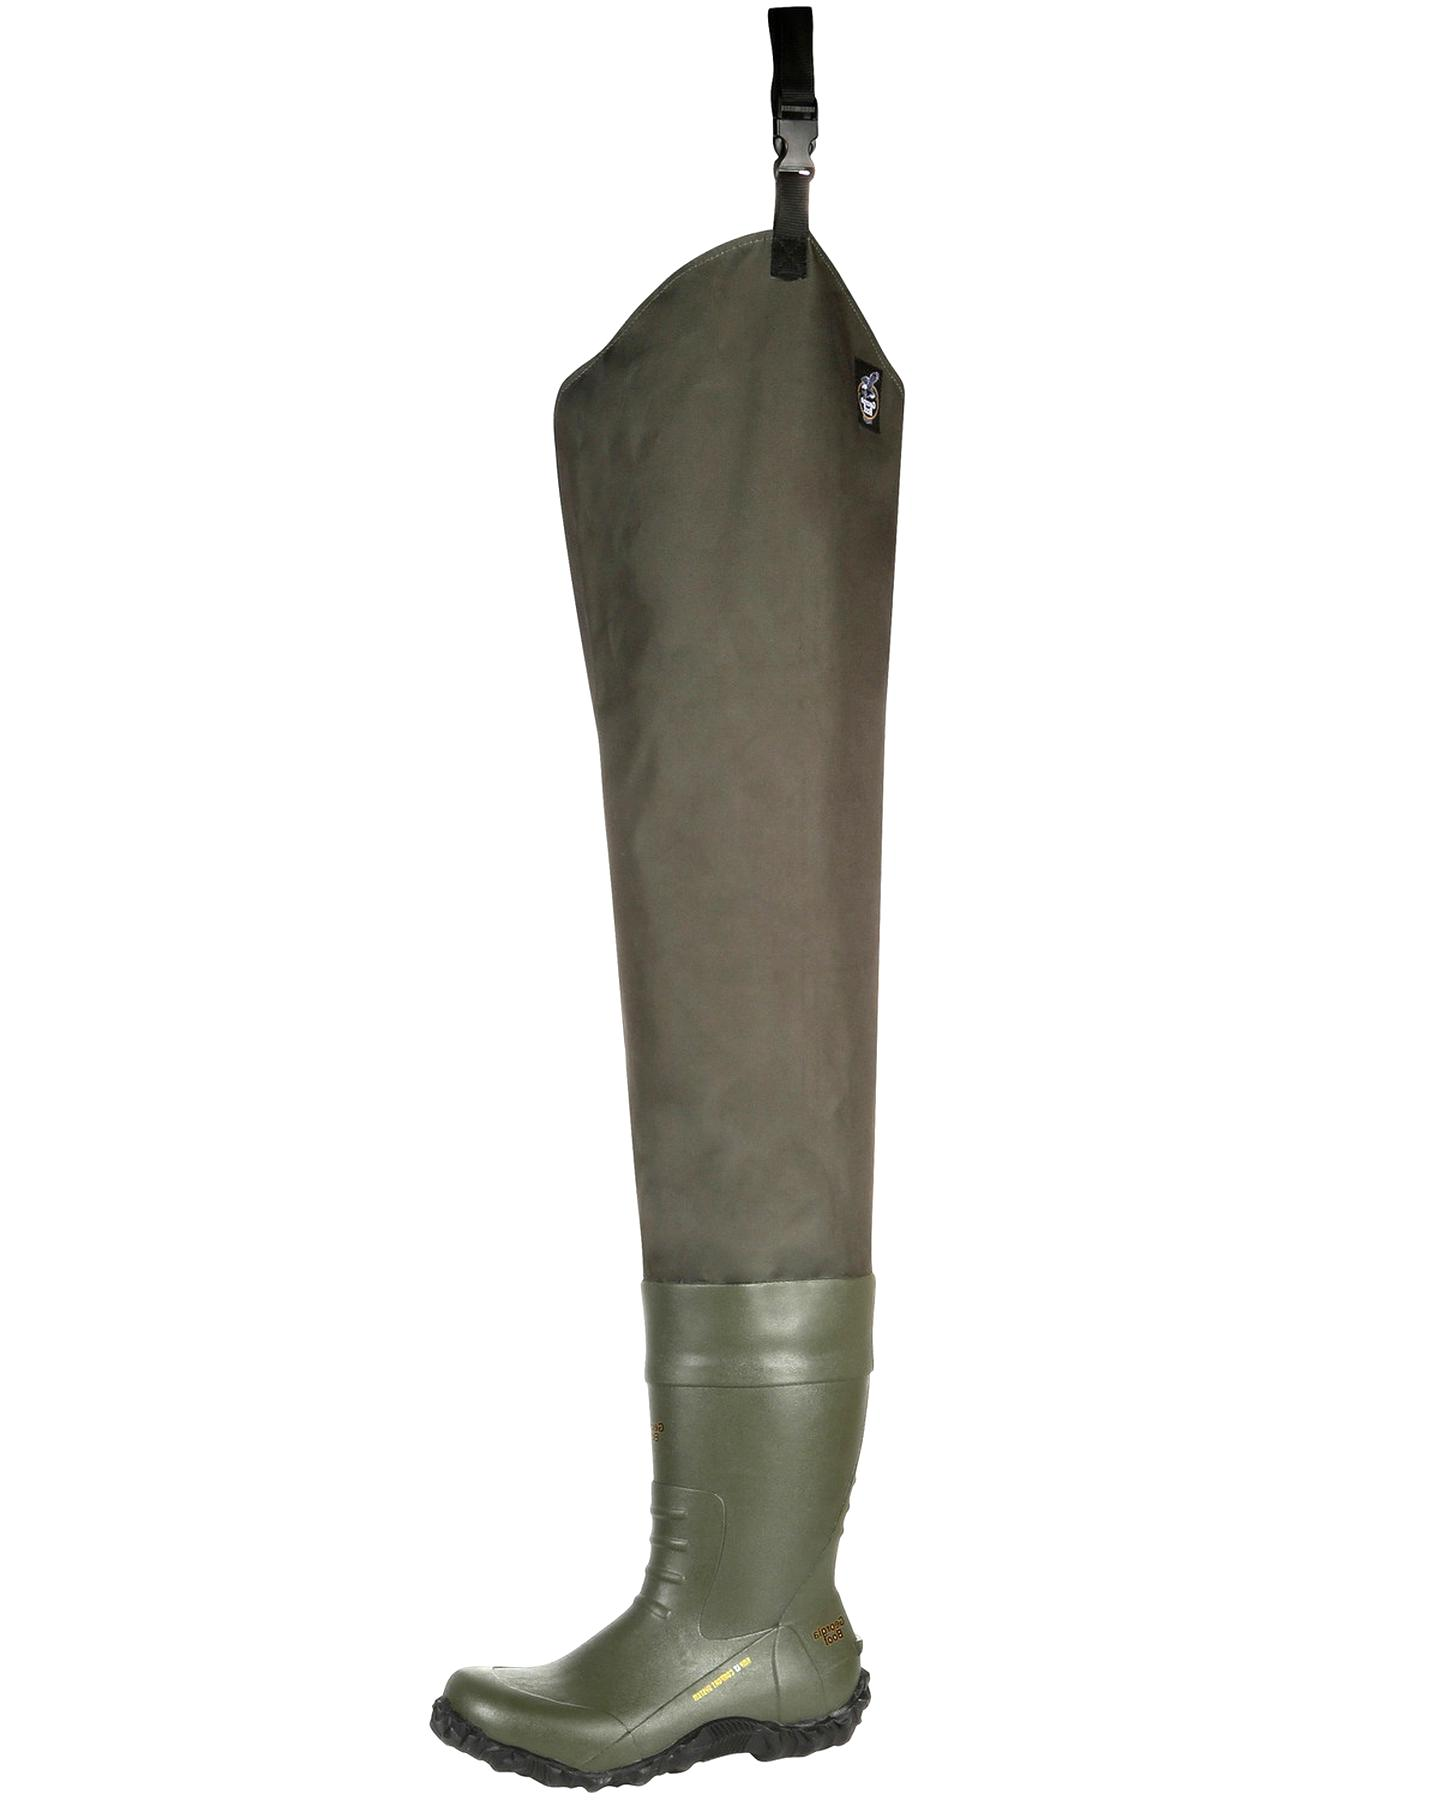 wader boots for sale